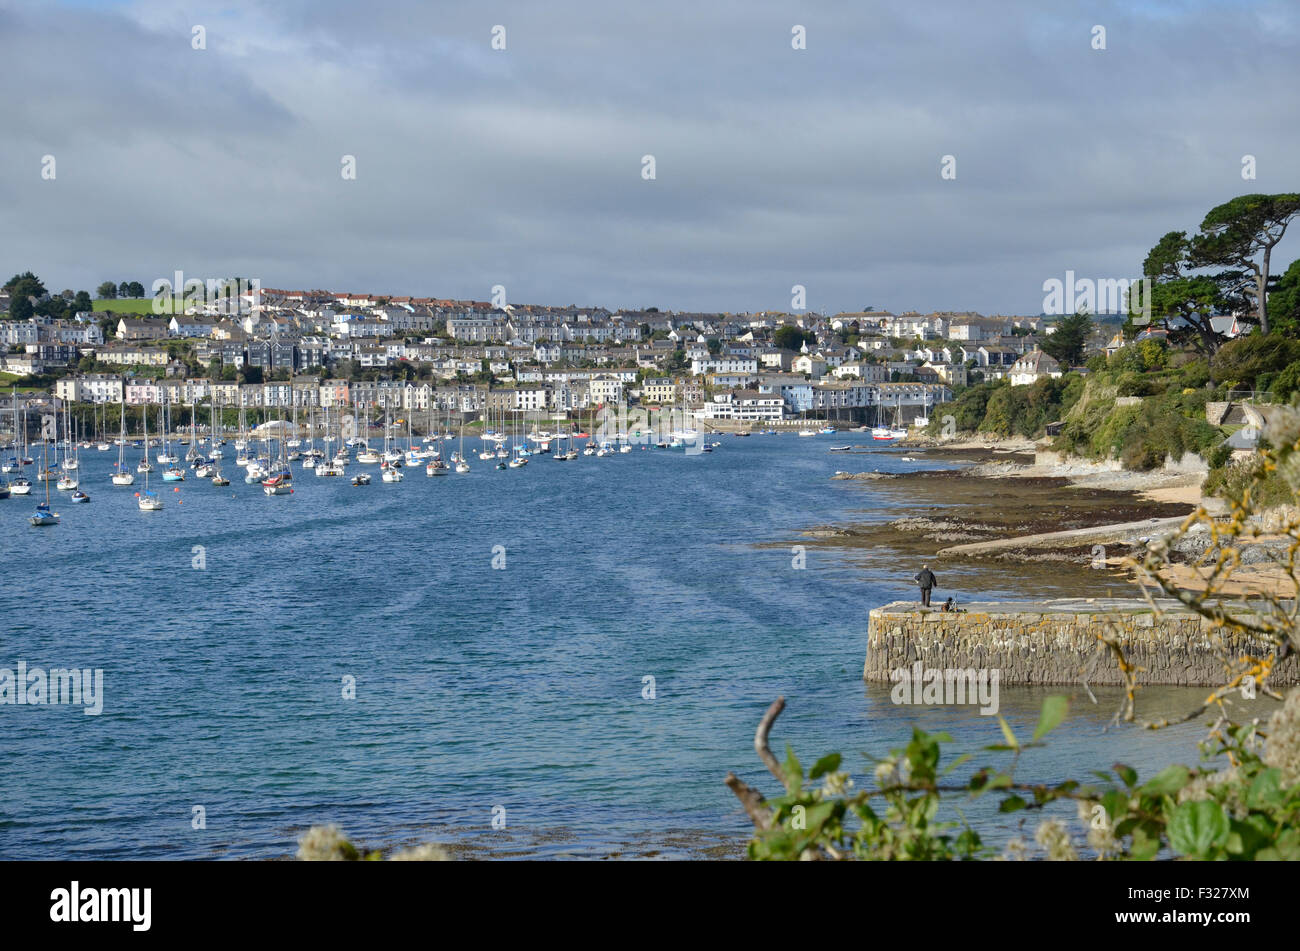 A view of Falmouth across Carrick Roads from Flushing in Cornwall - Stock Image